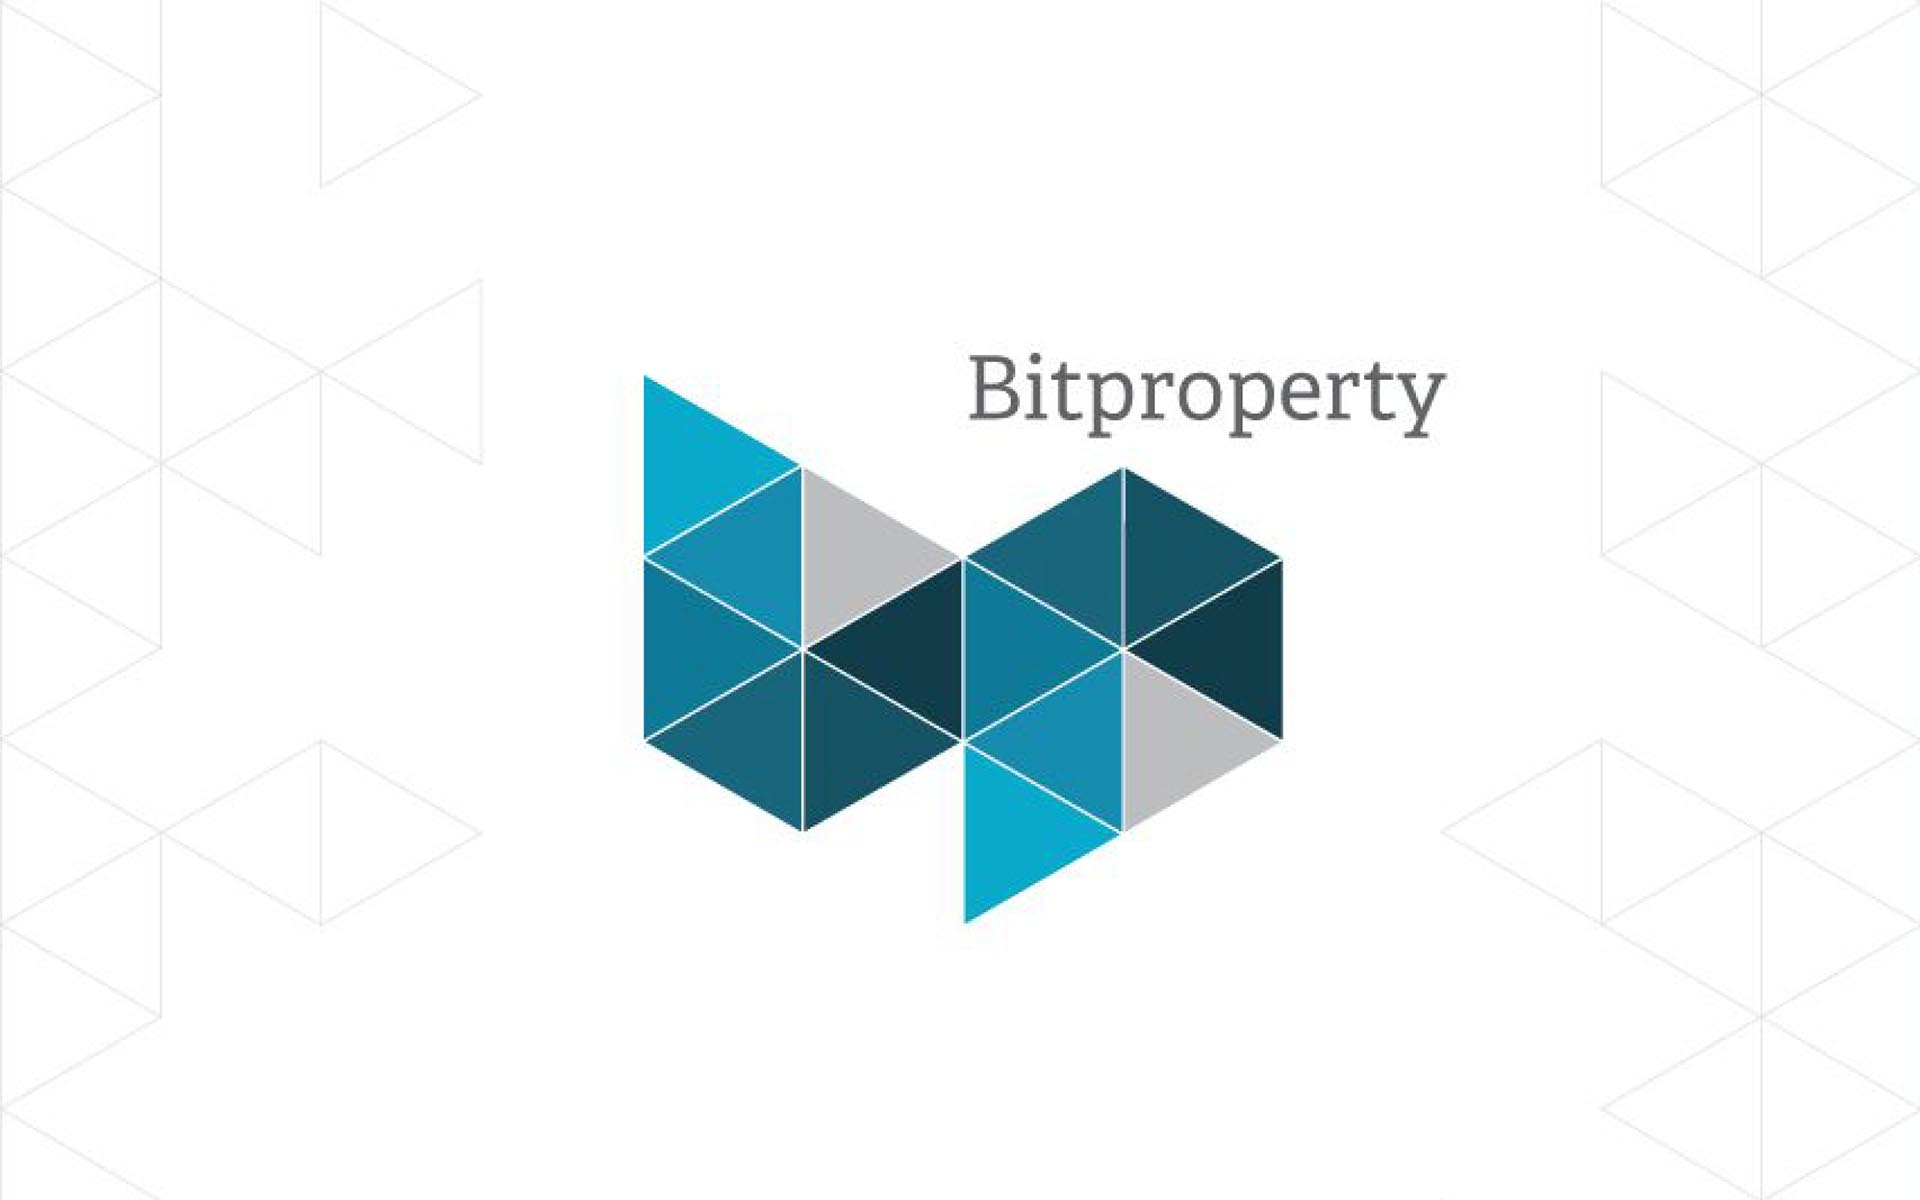 BitProperty Announces Upcoming Token Sale, Beta Release of Real Estate Investment Platform